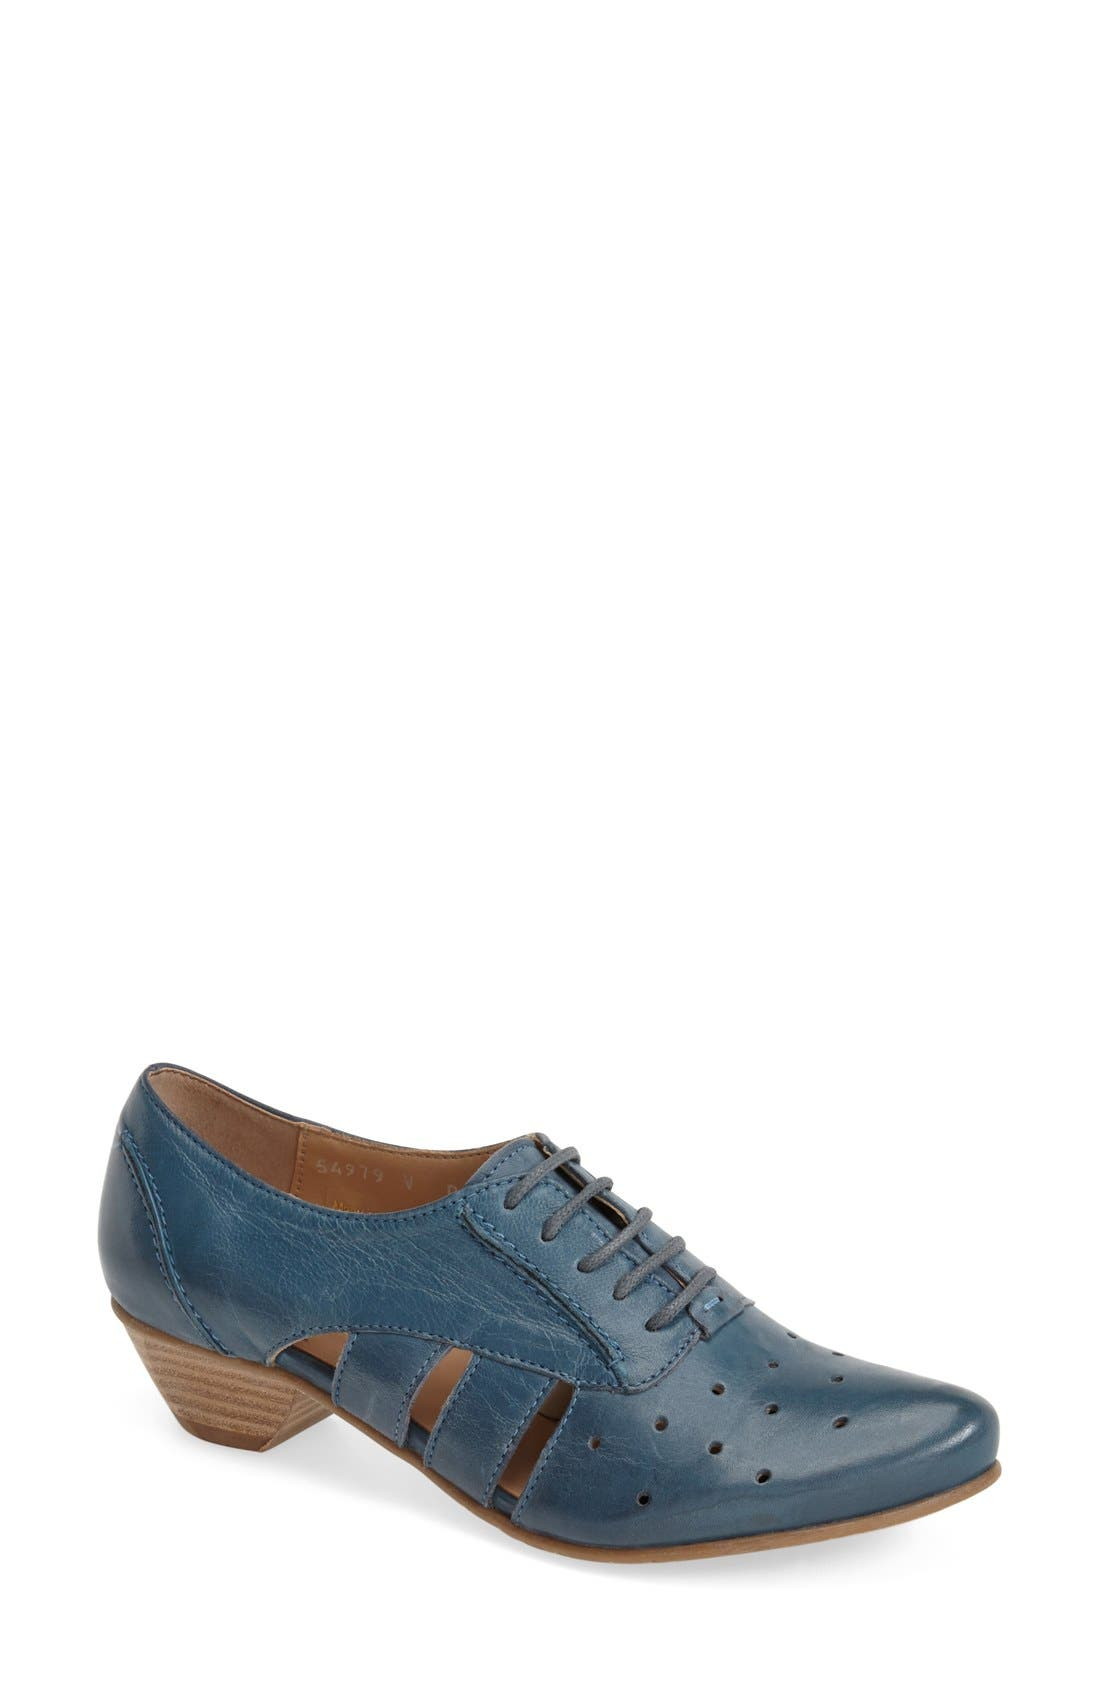 Alternate Image 1 Selected - Fidji 'VO92' Perforated Leather Pump (Women)